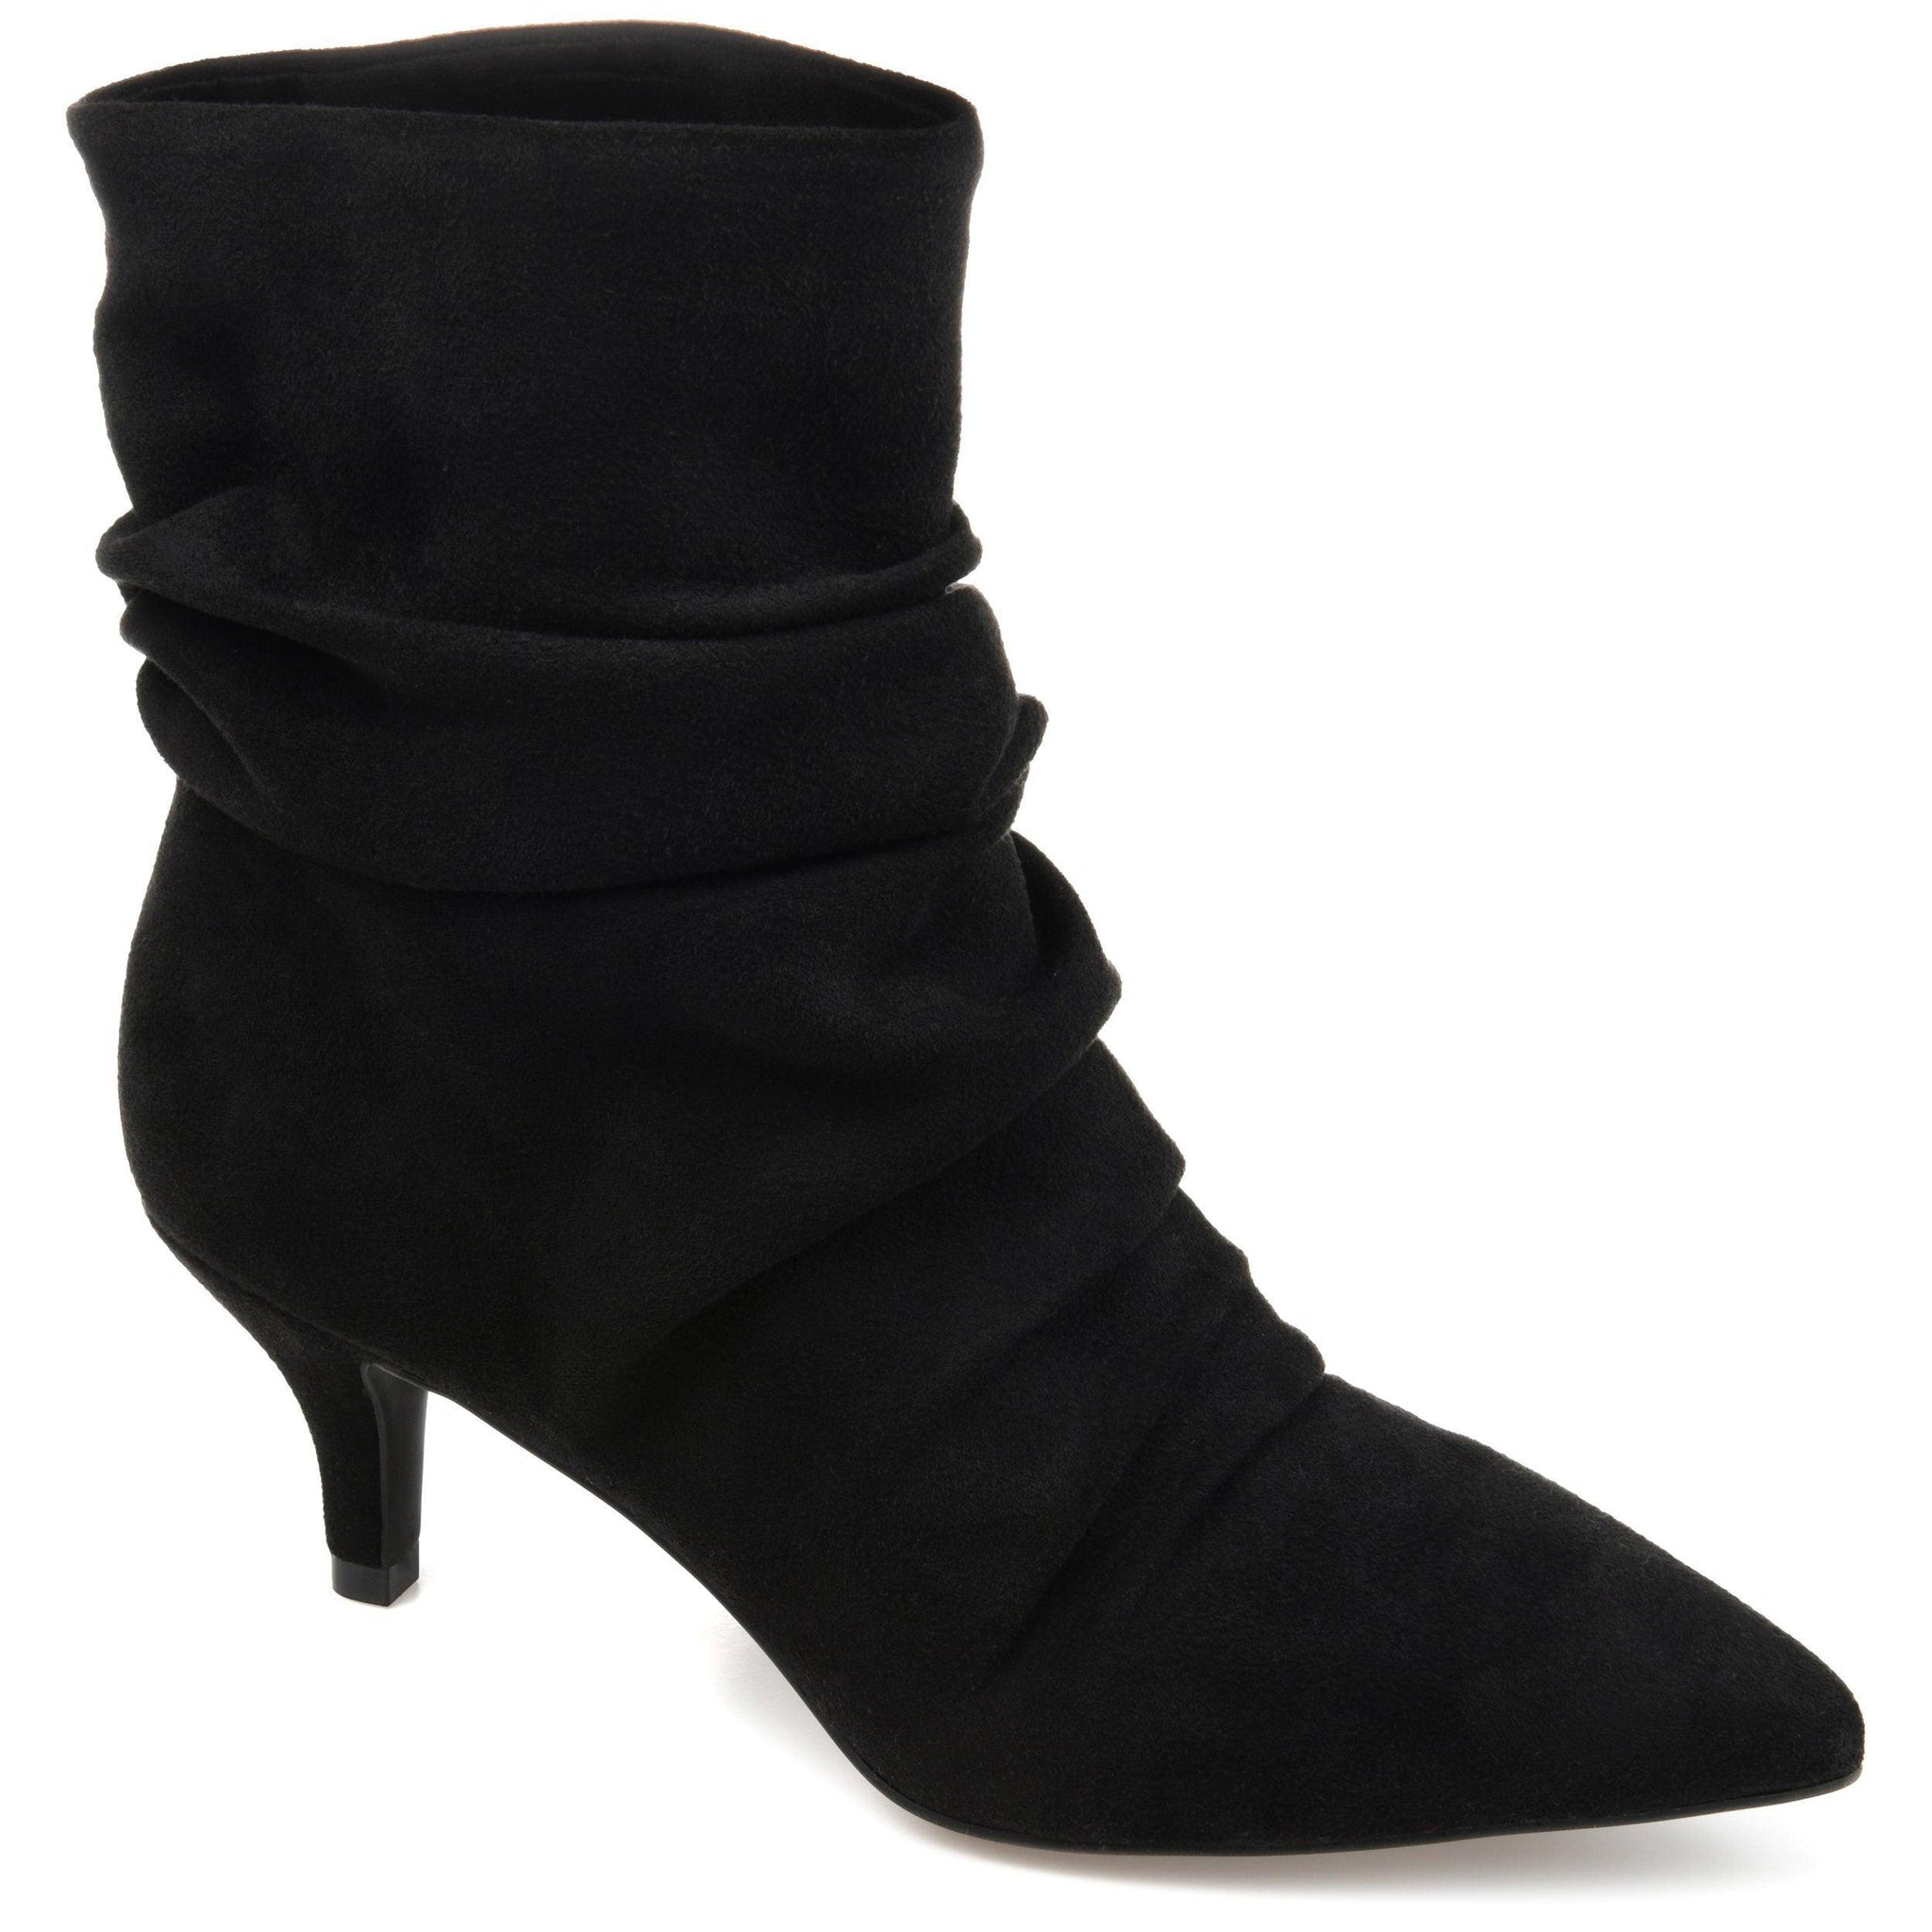 JO SHOES Journee Collection Black 8